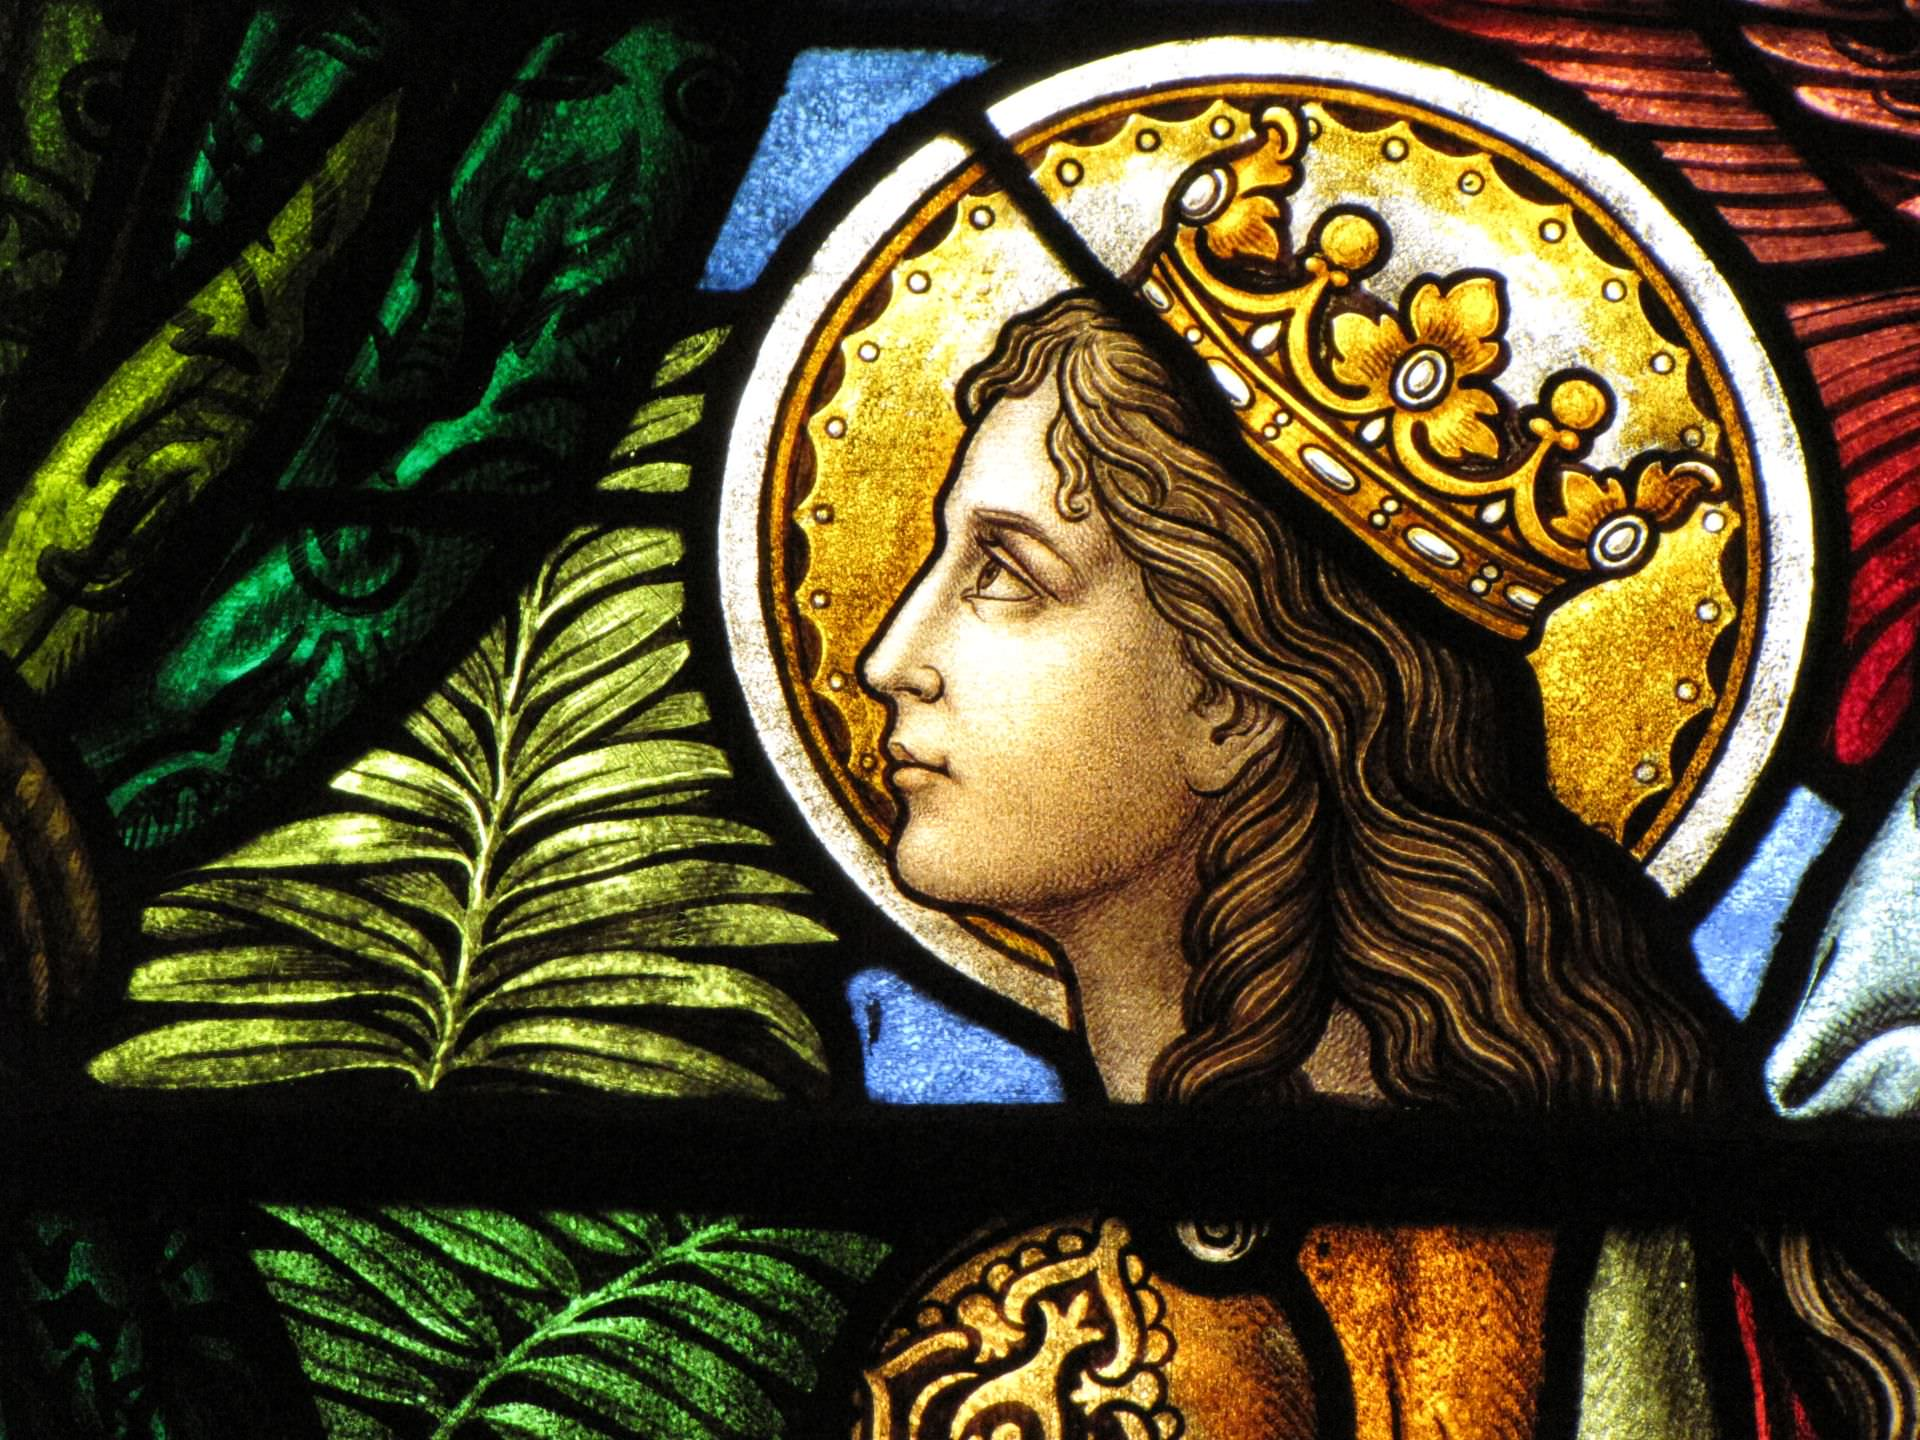 martyr, crown, music, art, stained glass, holiness, sacred, palm, cecilia, stained glass, santa cecilia